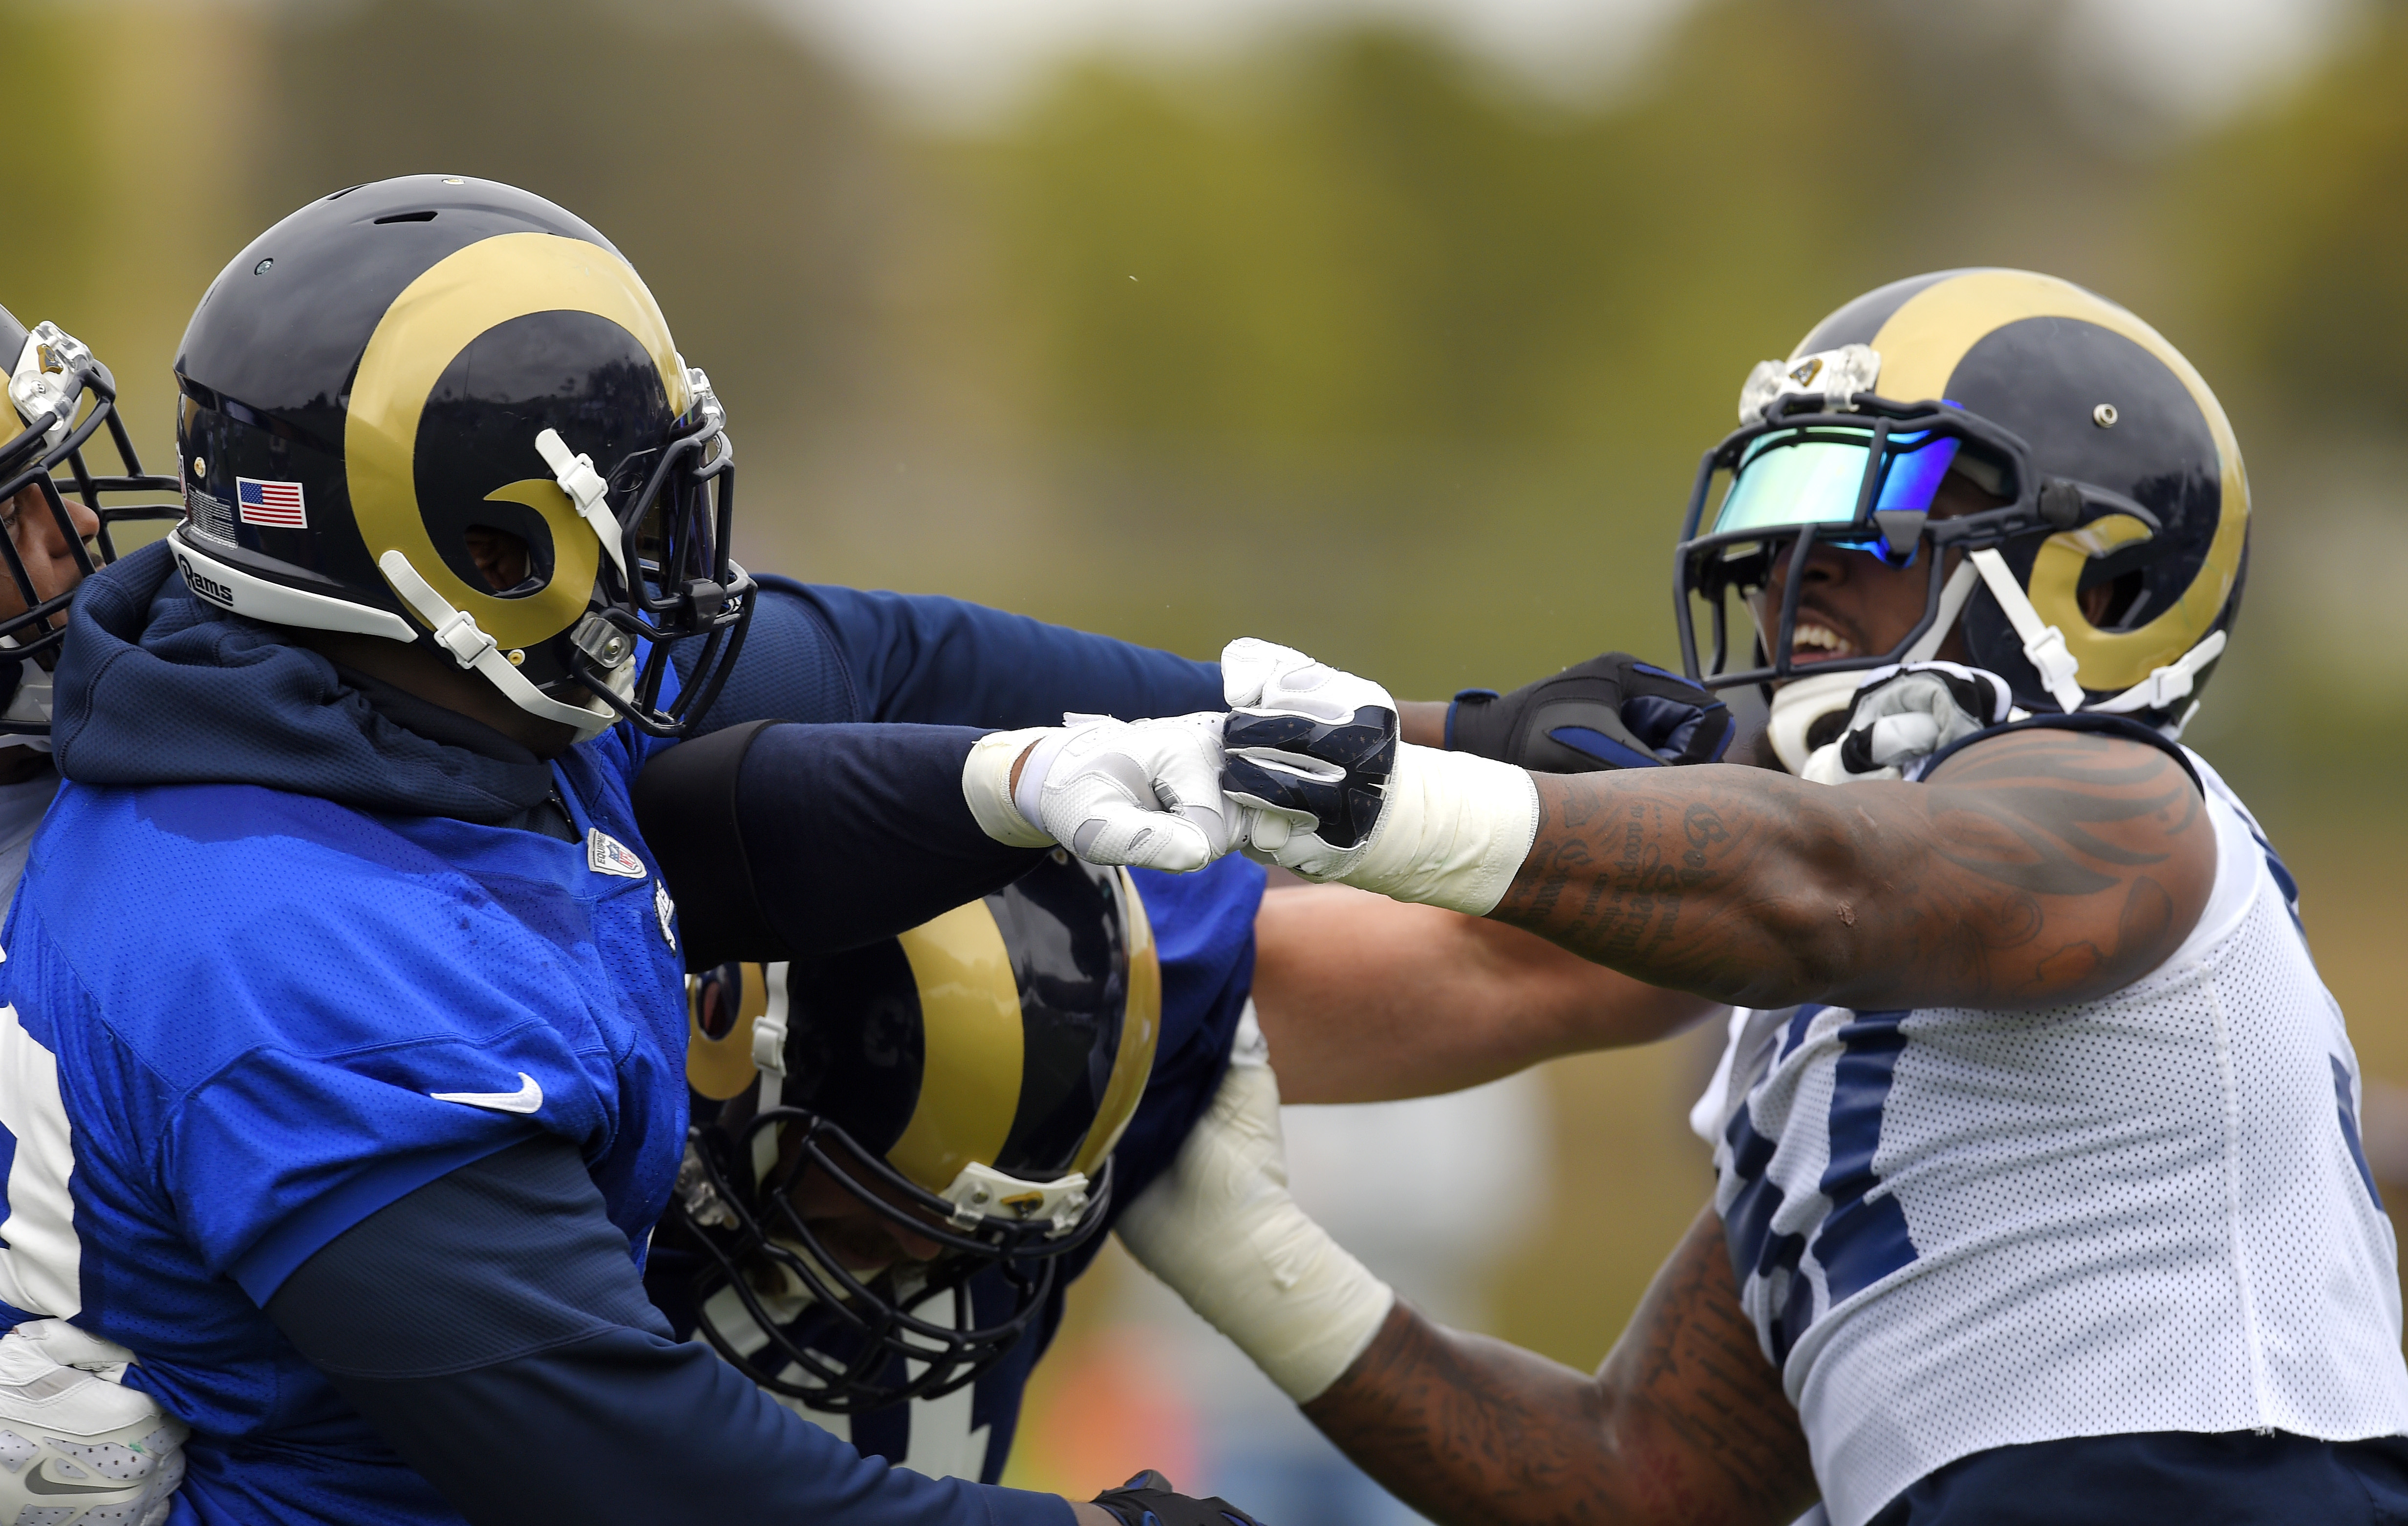 Los Angeles Rams tackle Greg Robinson, left, and defensive end Eugene Sims scuffle during NFL football practice, Tuesday, June 14, 2016, in Oxnard, Calif. (AP Photo/Mark J. Terrill)